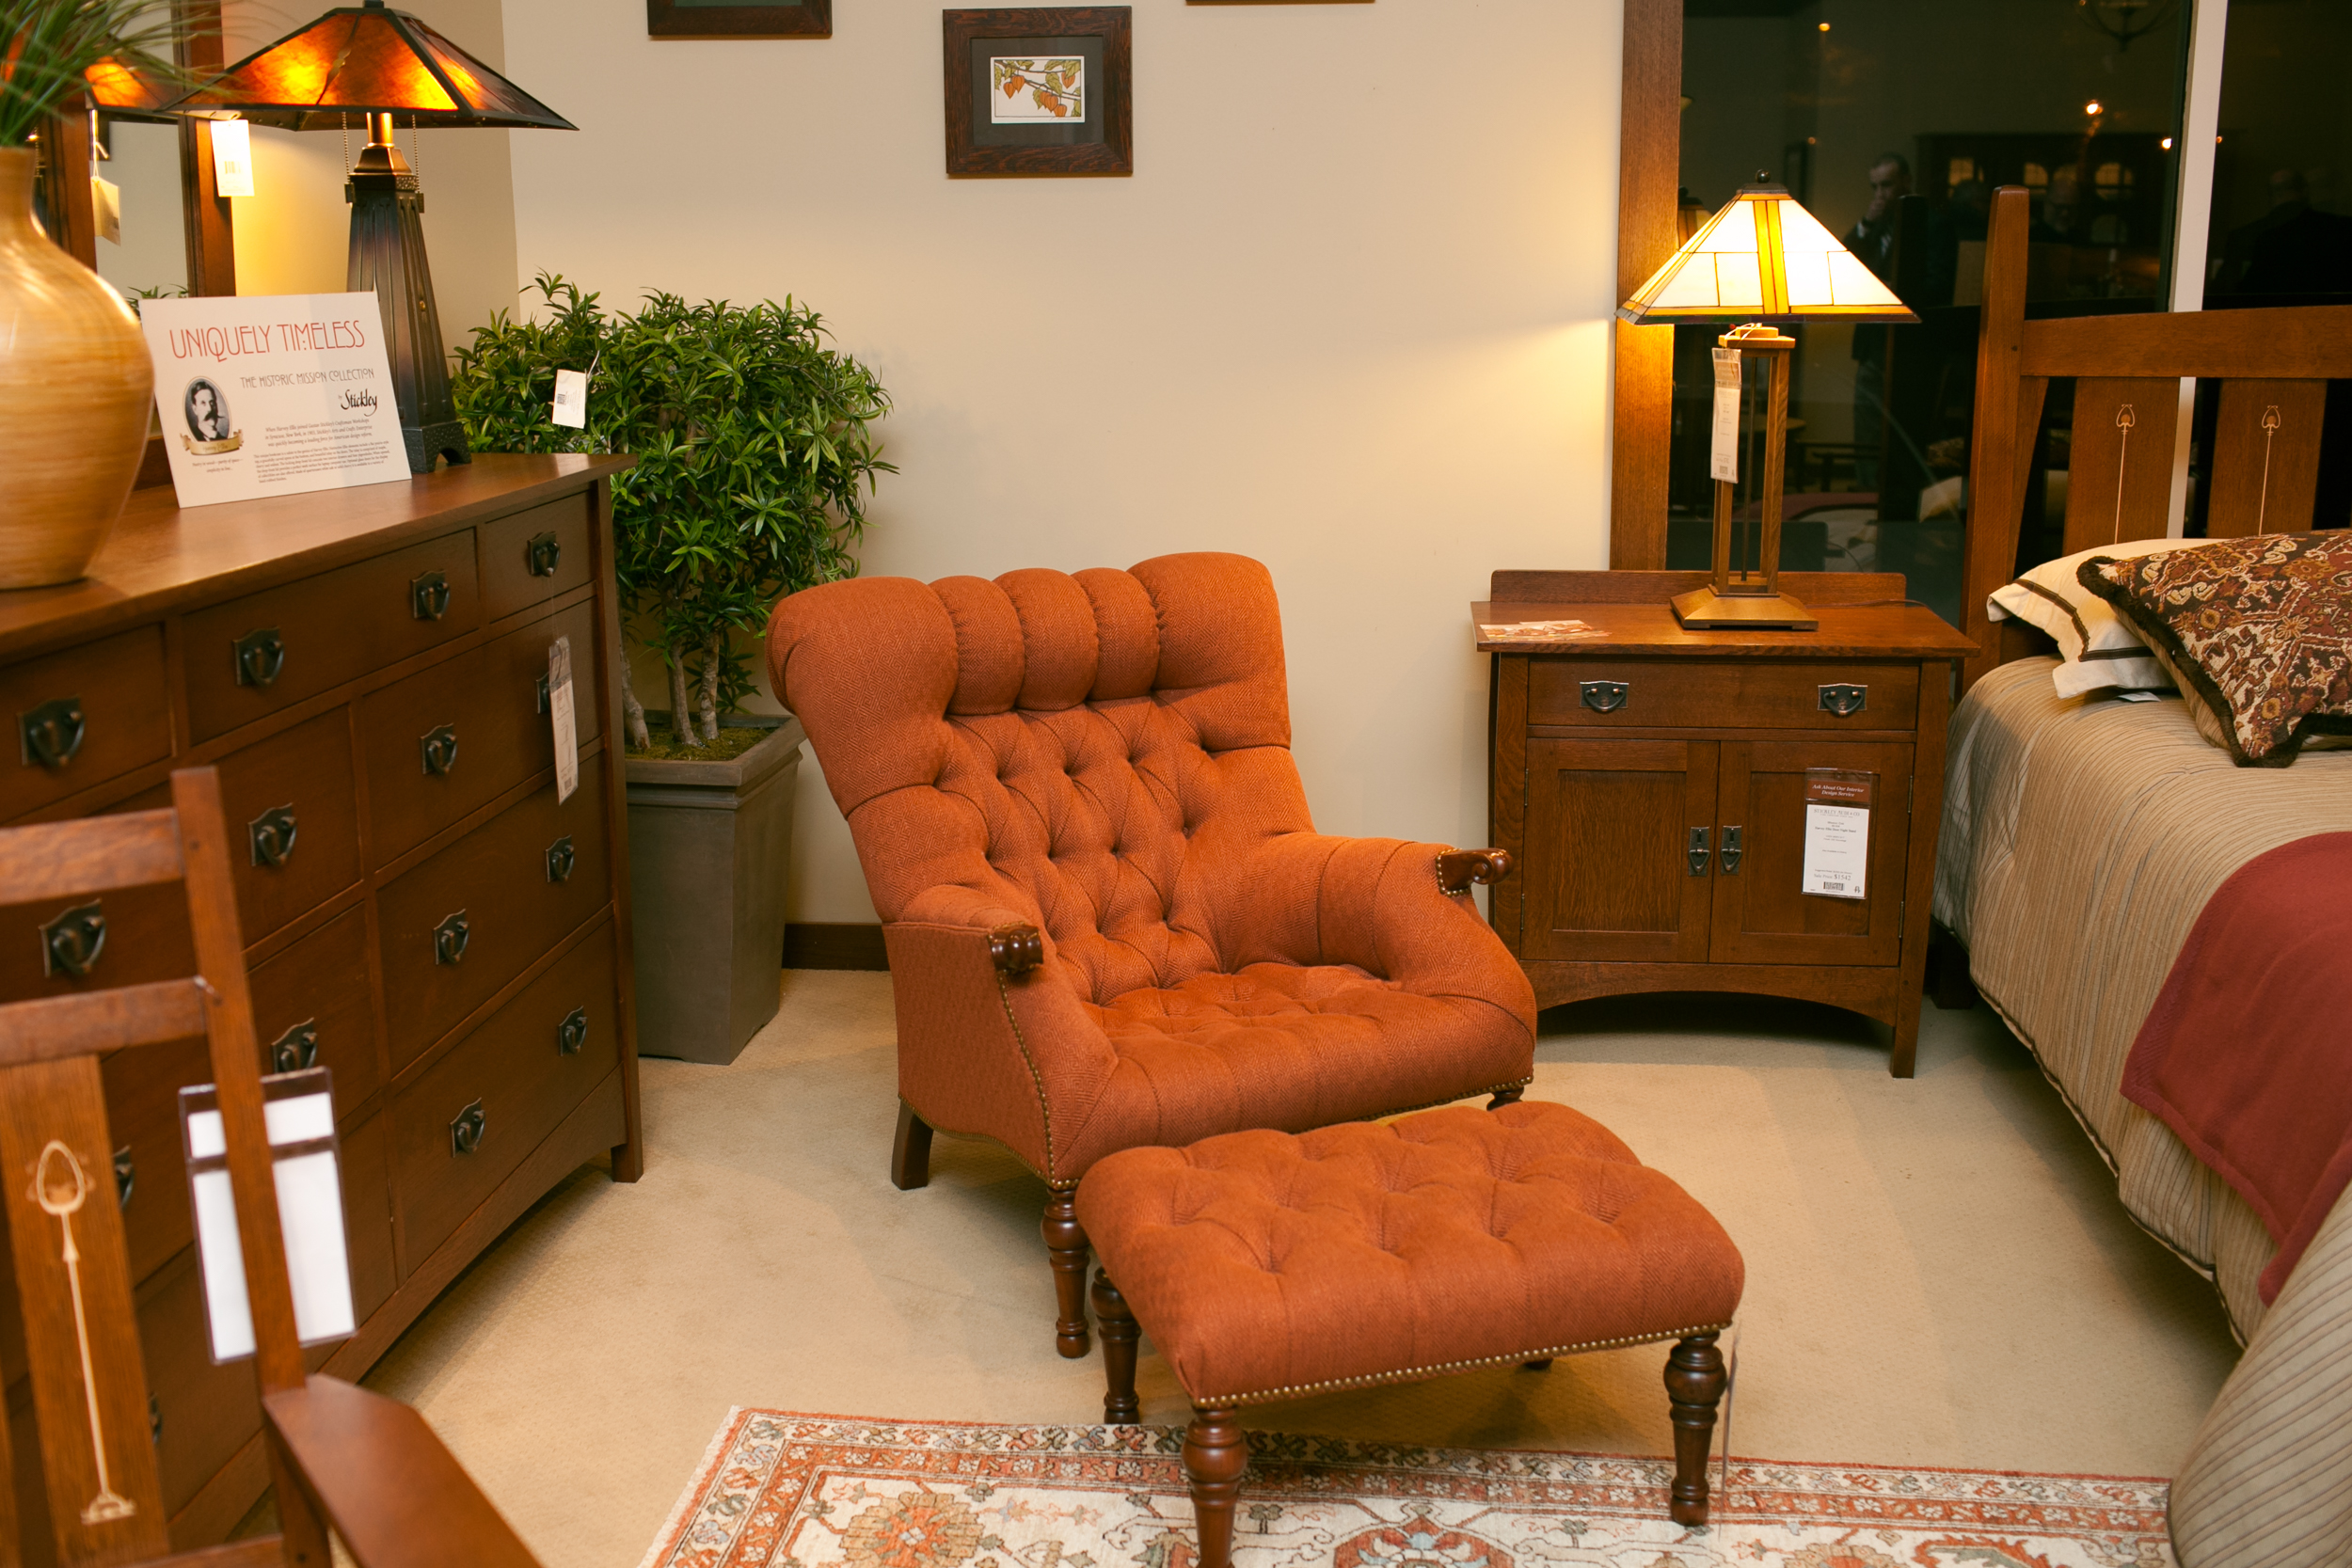 A design vignette at the Stickley store